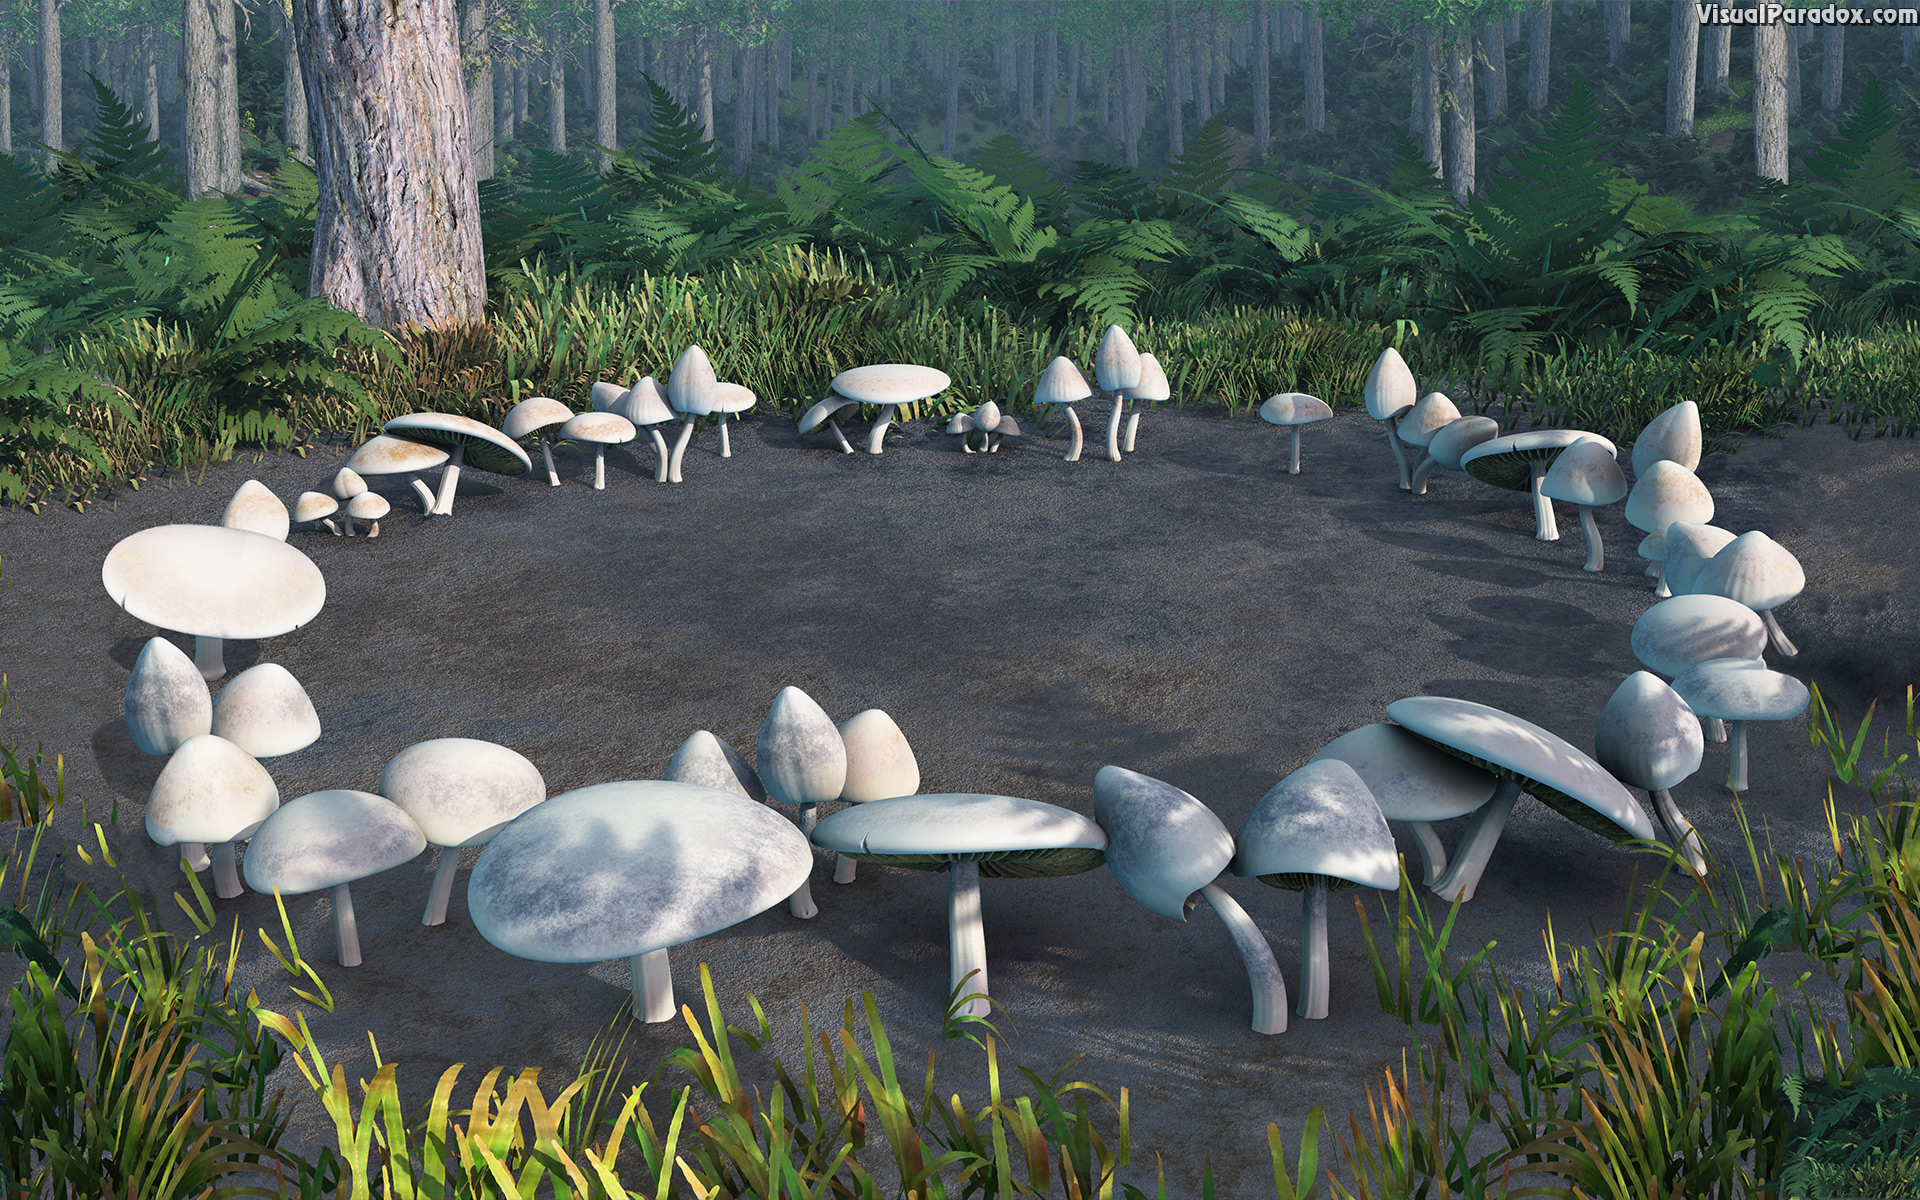 mushrooms, toadstools, circle, forest, woods, fungus, patch, glen, mushroom, toadstool, circles, 3d, wallpaper